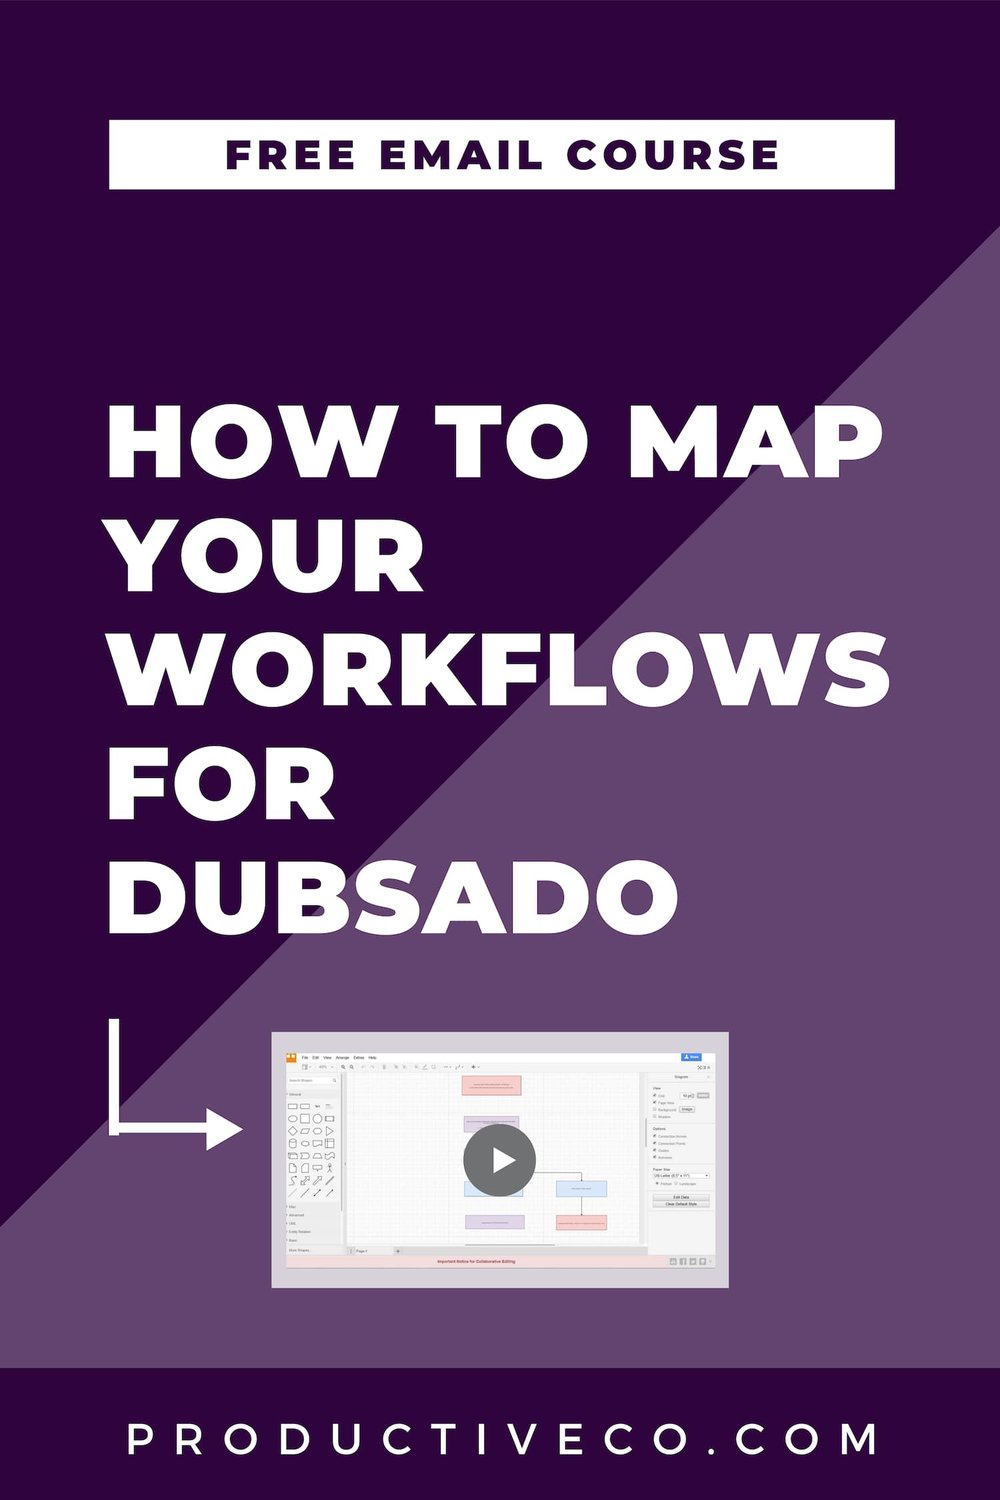 Workflow mapping for Dubsado setup. Get my free email course, Dubsado Workflow Secrets to give you the foundation you need for setup.